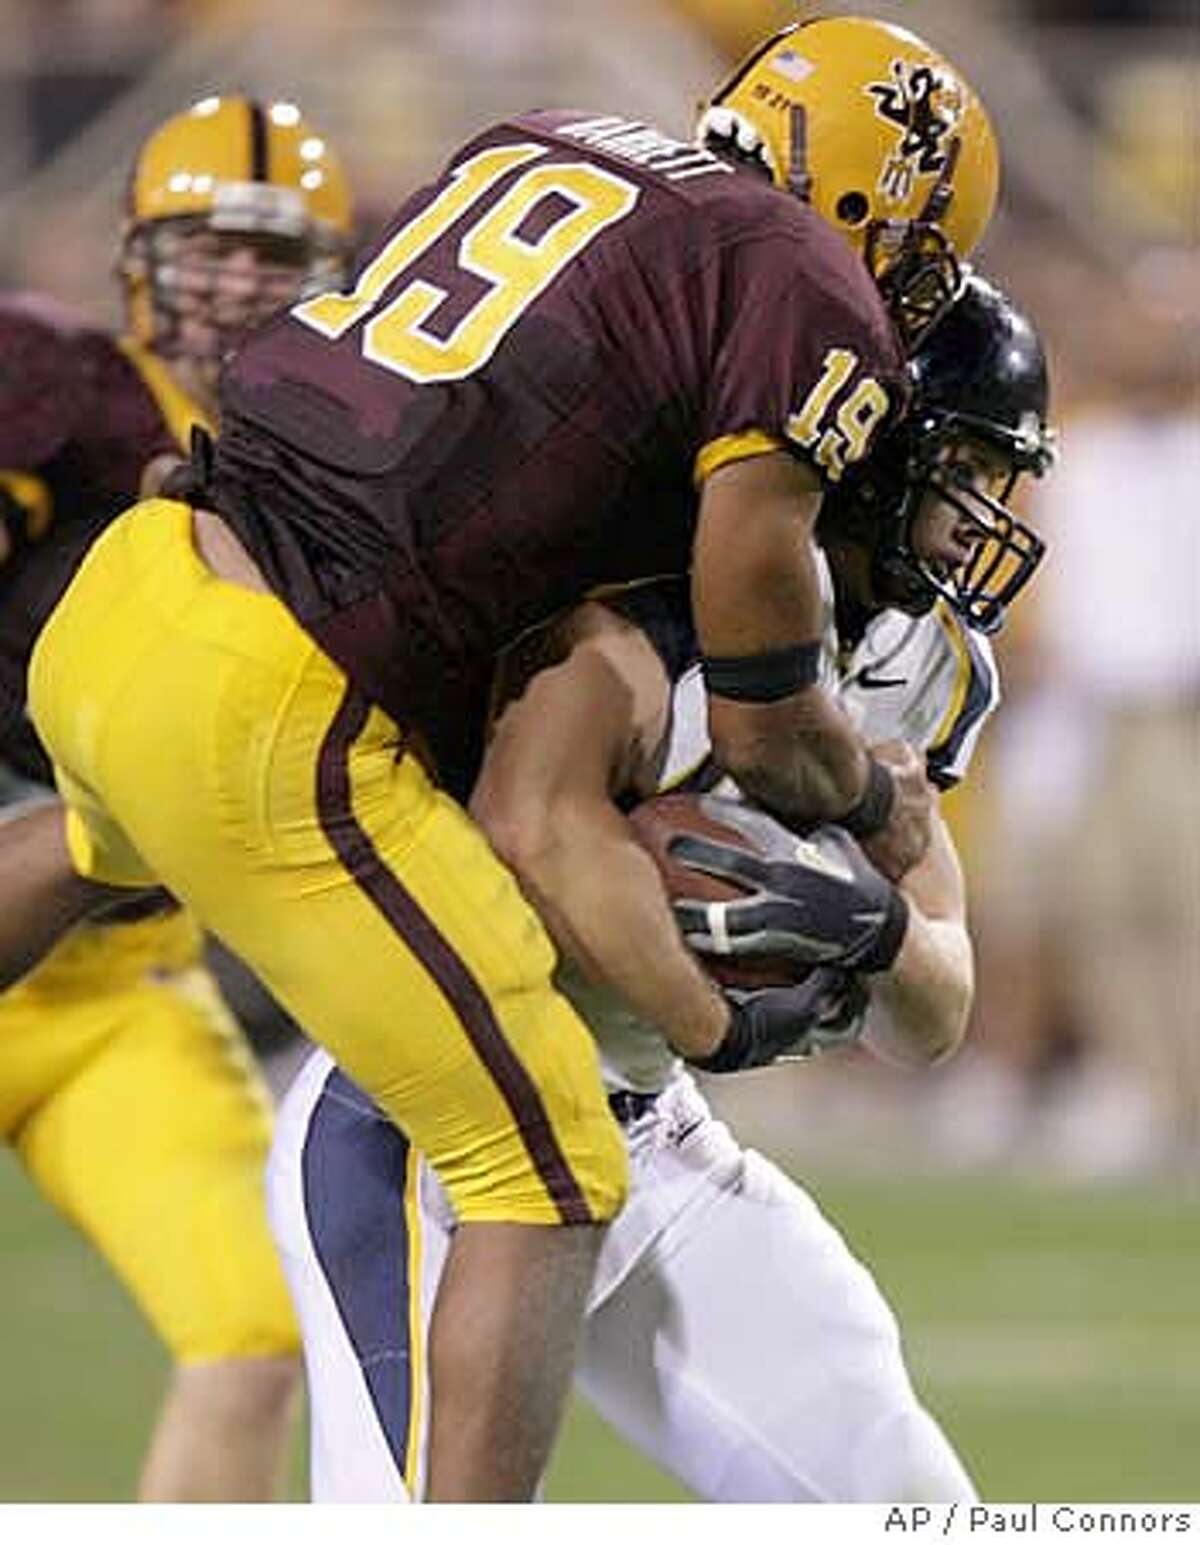 California tight end Craig Stevens, right, makes a reception in front of Arizona State free safety Josh Barrett, left, in the first quarter of a college football game Saturday, Oct. 27, 2007, in Tempe, Ariz.(AP Photo/Paul Connors)